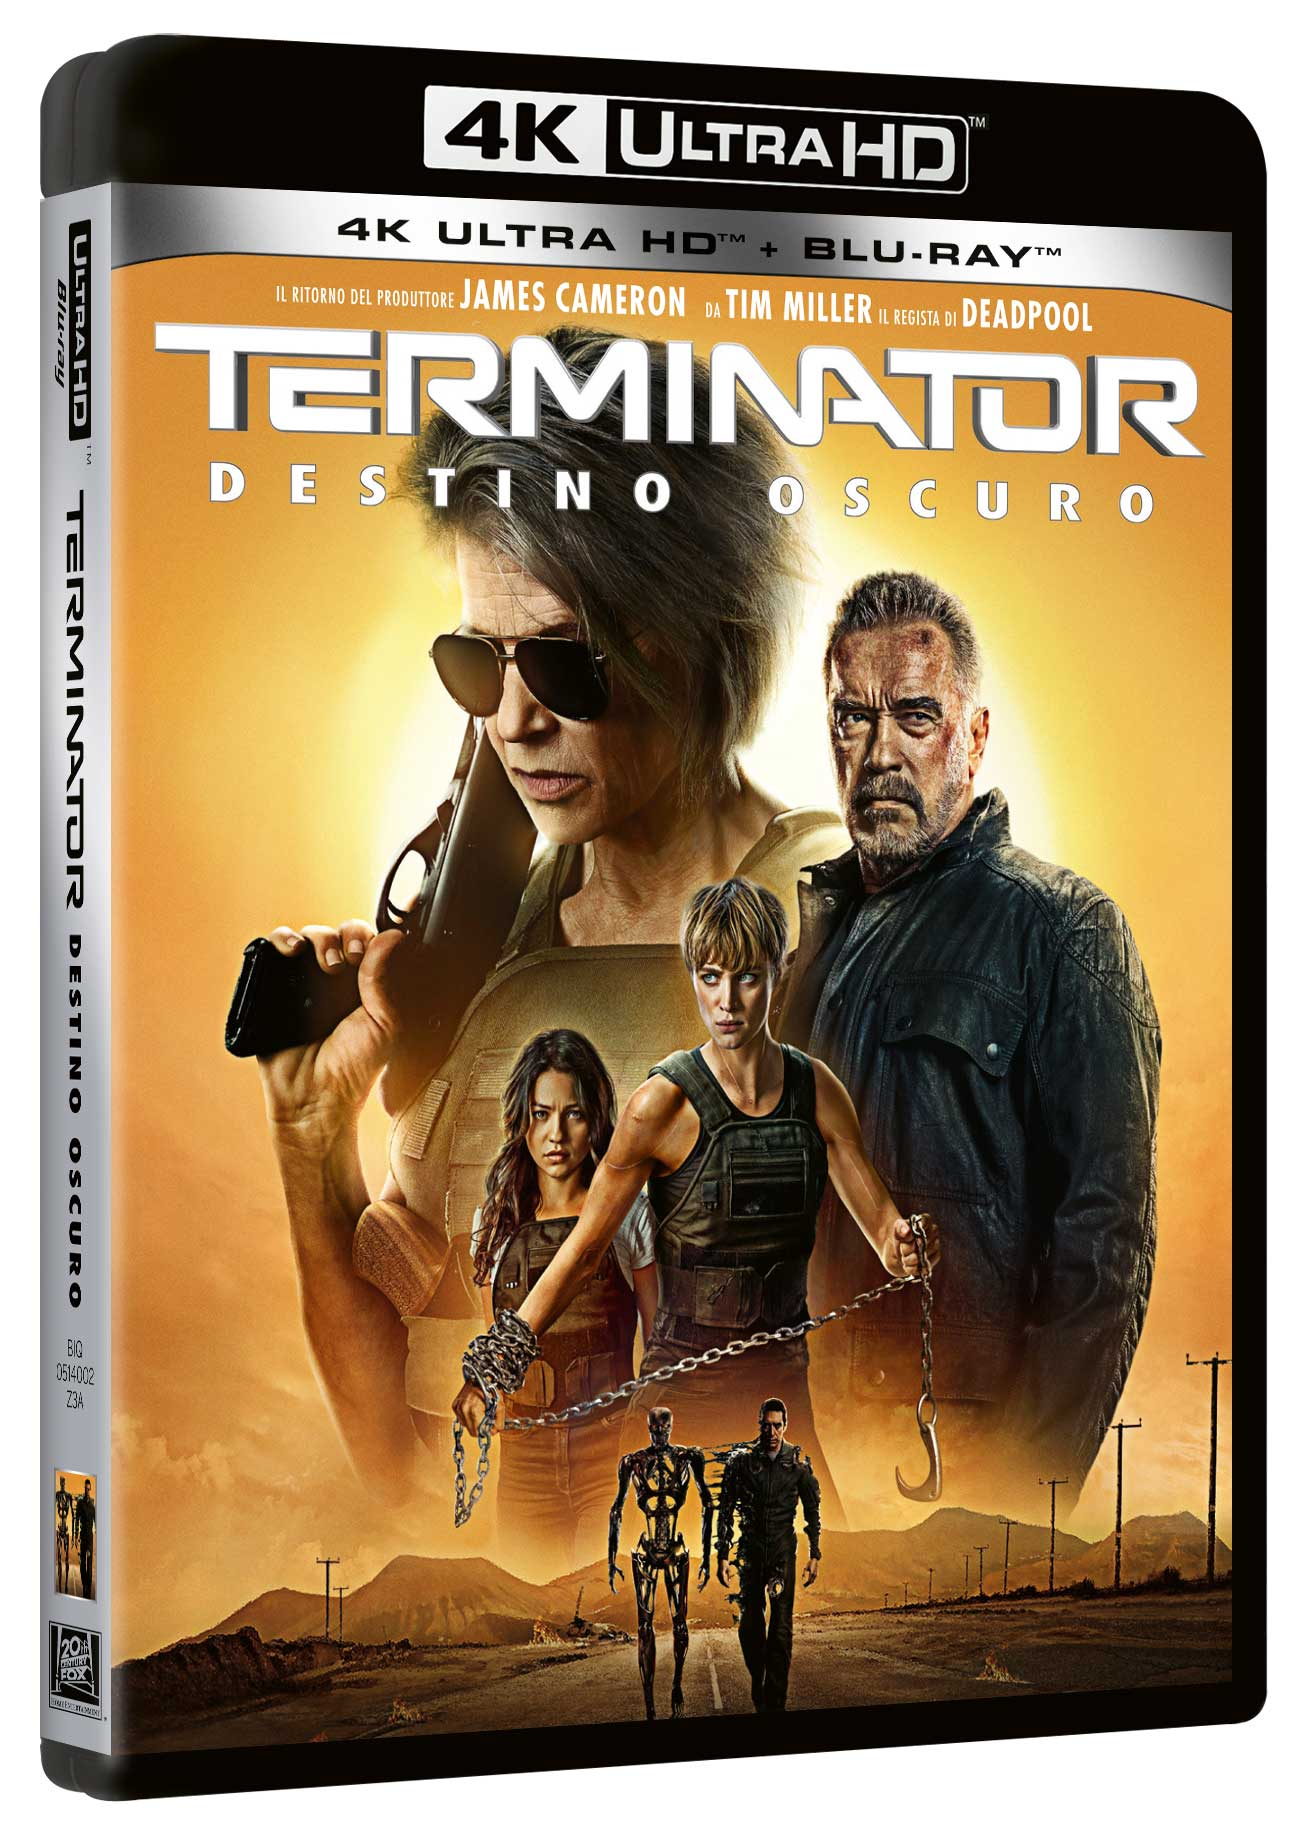 TERMINATOR - DESTINO OSCURO (BLU-RAY 4K ULTRA HD+BLU-RAY)